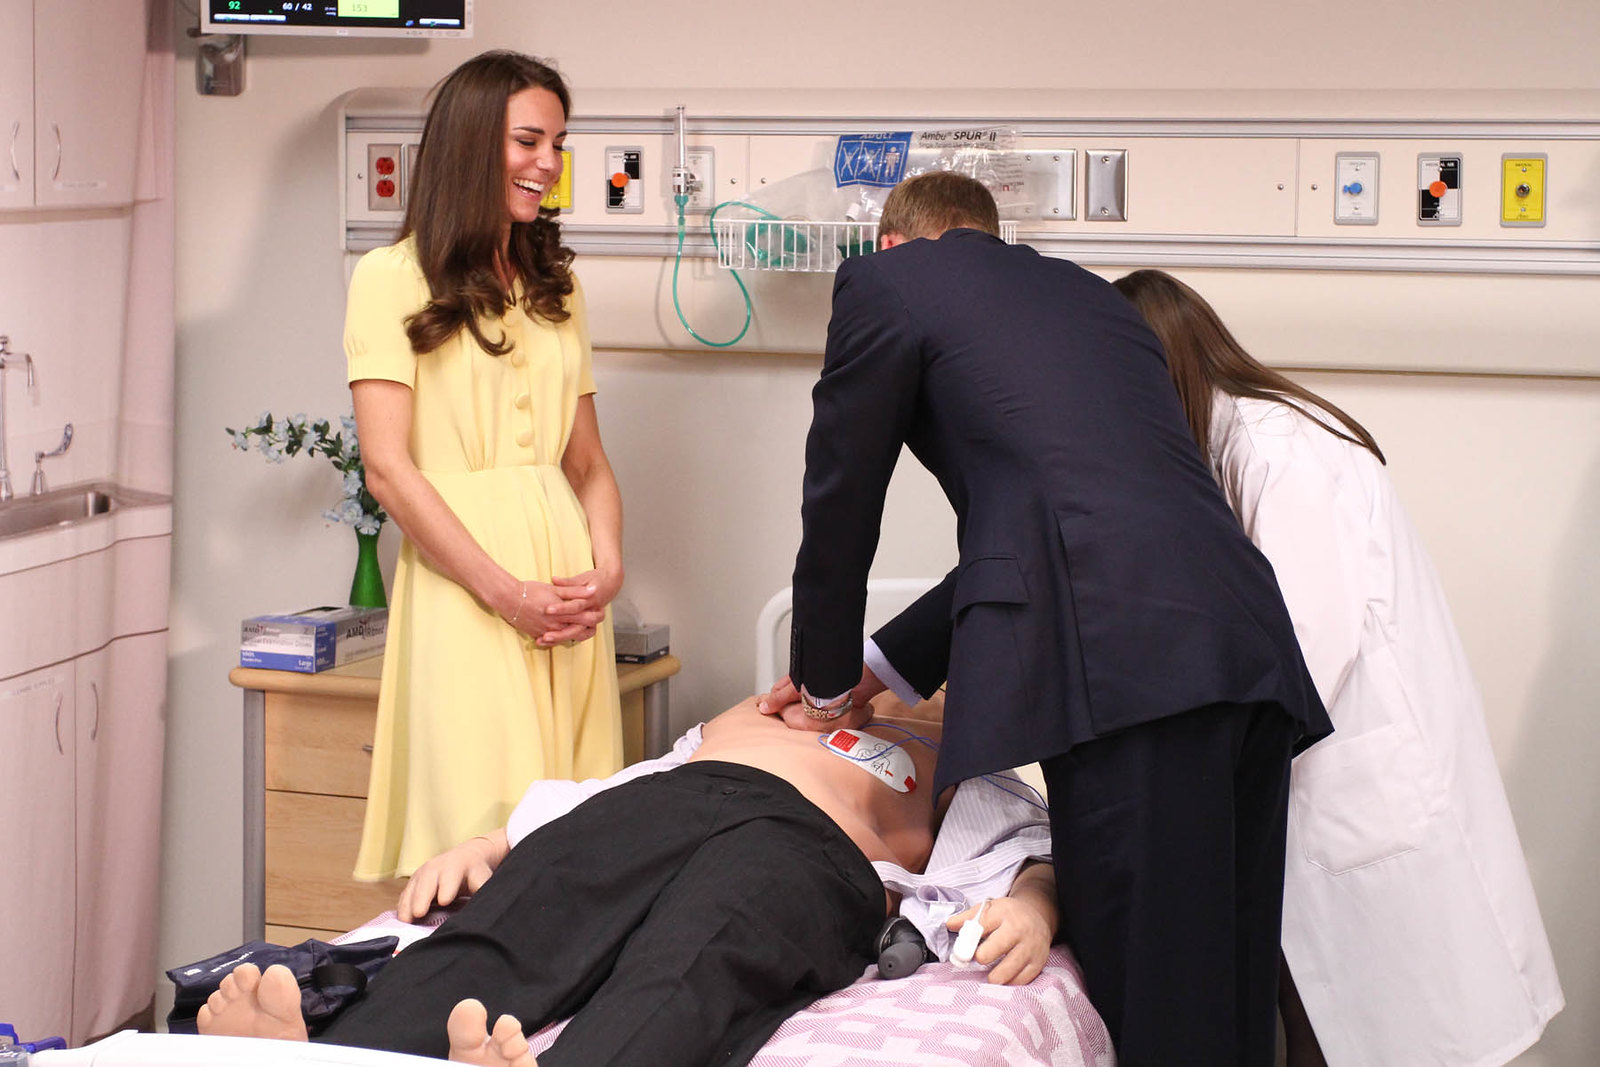 The Duke and Duchess of Cambridge visited University of Calgary in 2011